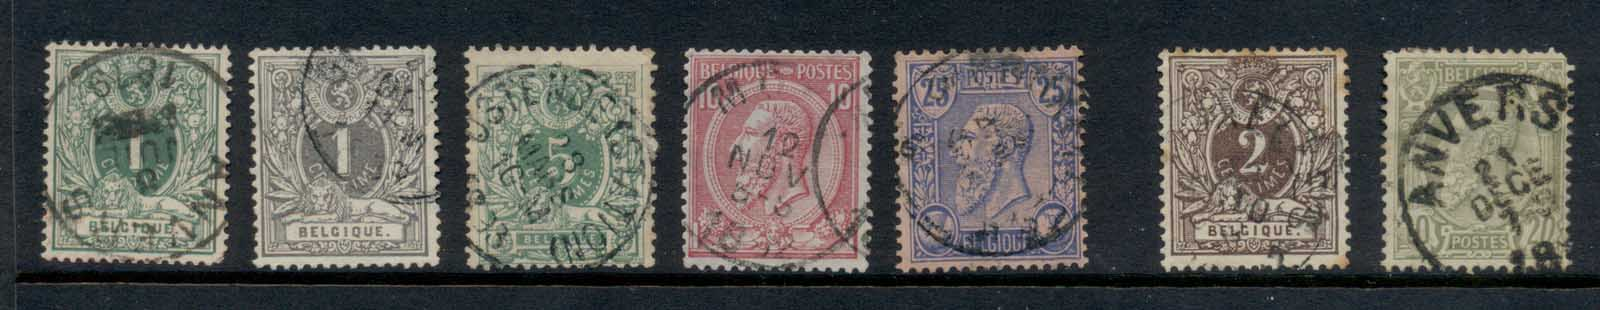 Belgium 1884-90 King Leopold II Asst (light tones) FU